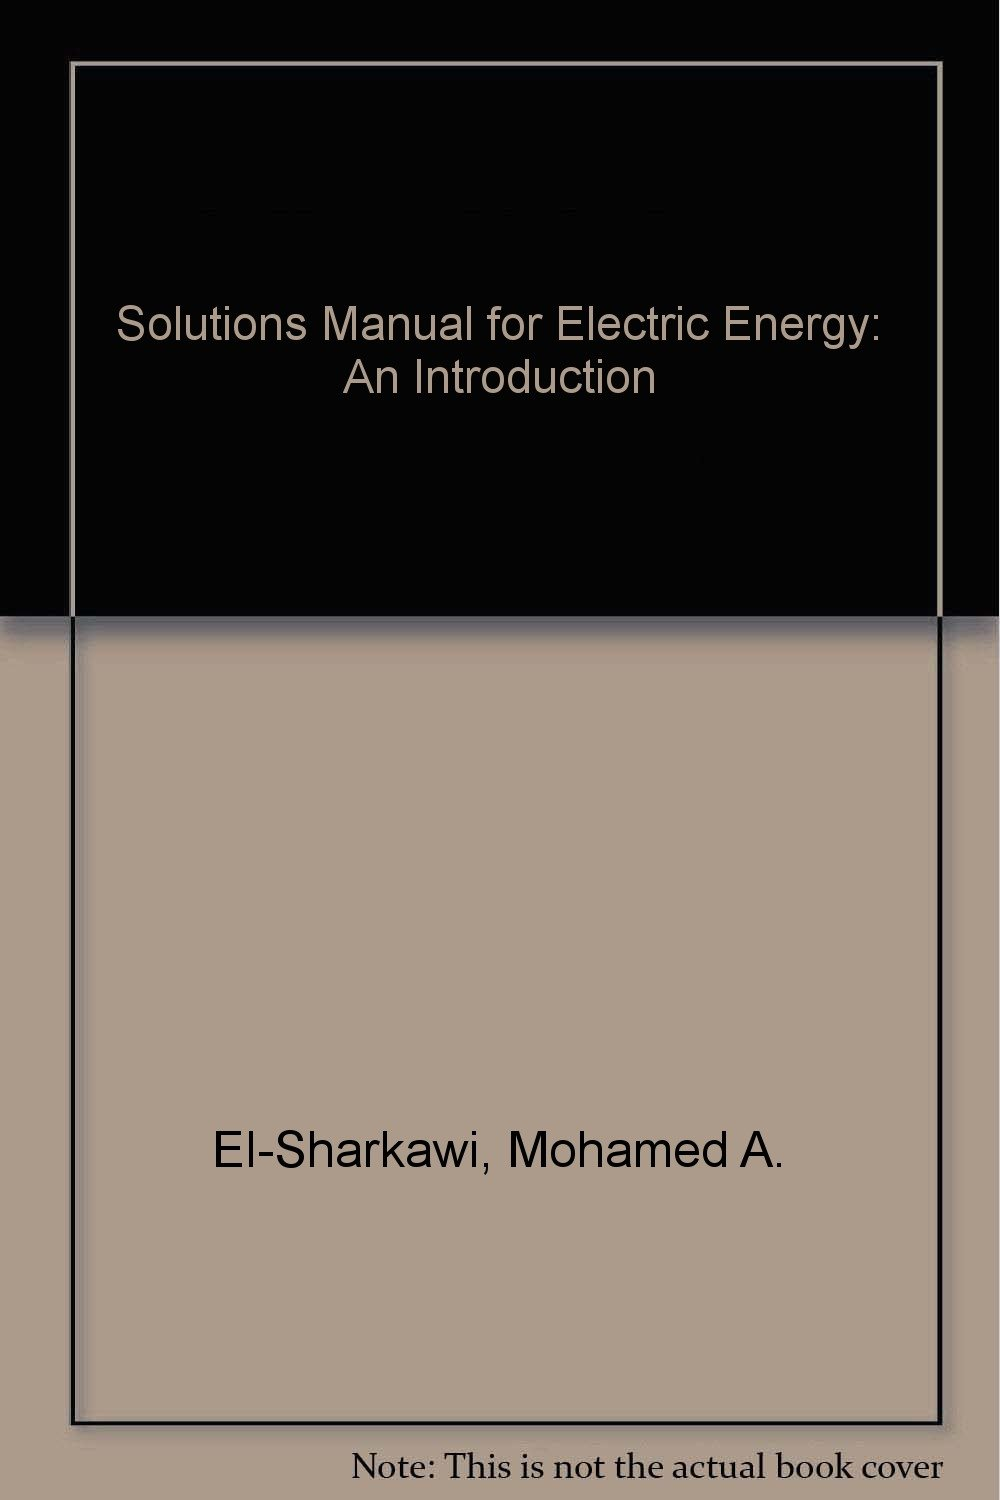 Solutions Manual for Electric Energy: An Introduction: Mohamed A.  El-Sharkawi: 9780849335662: Books - Amazon.ca